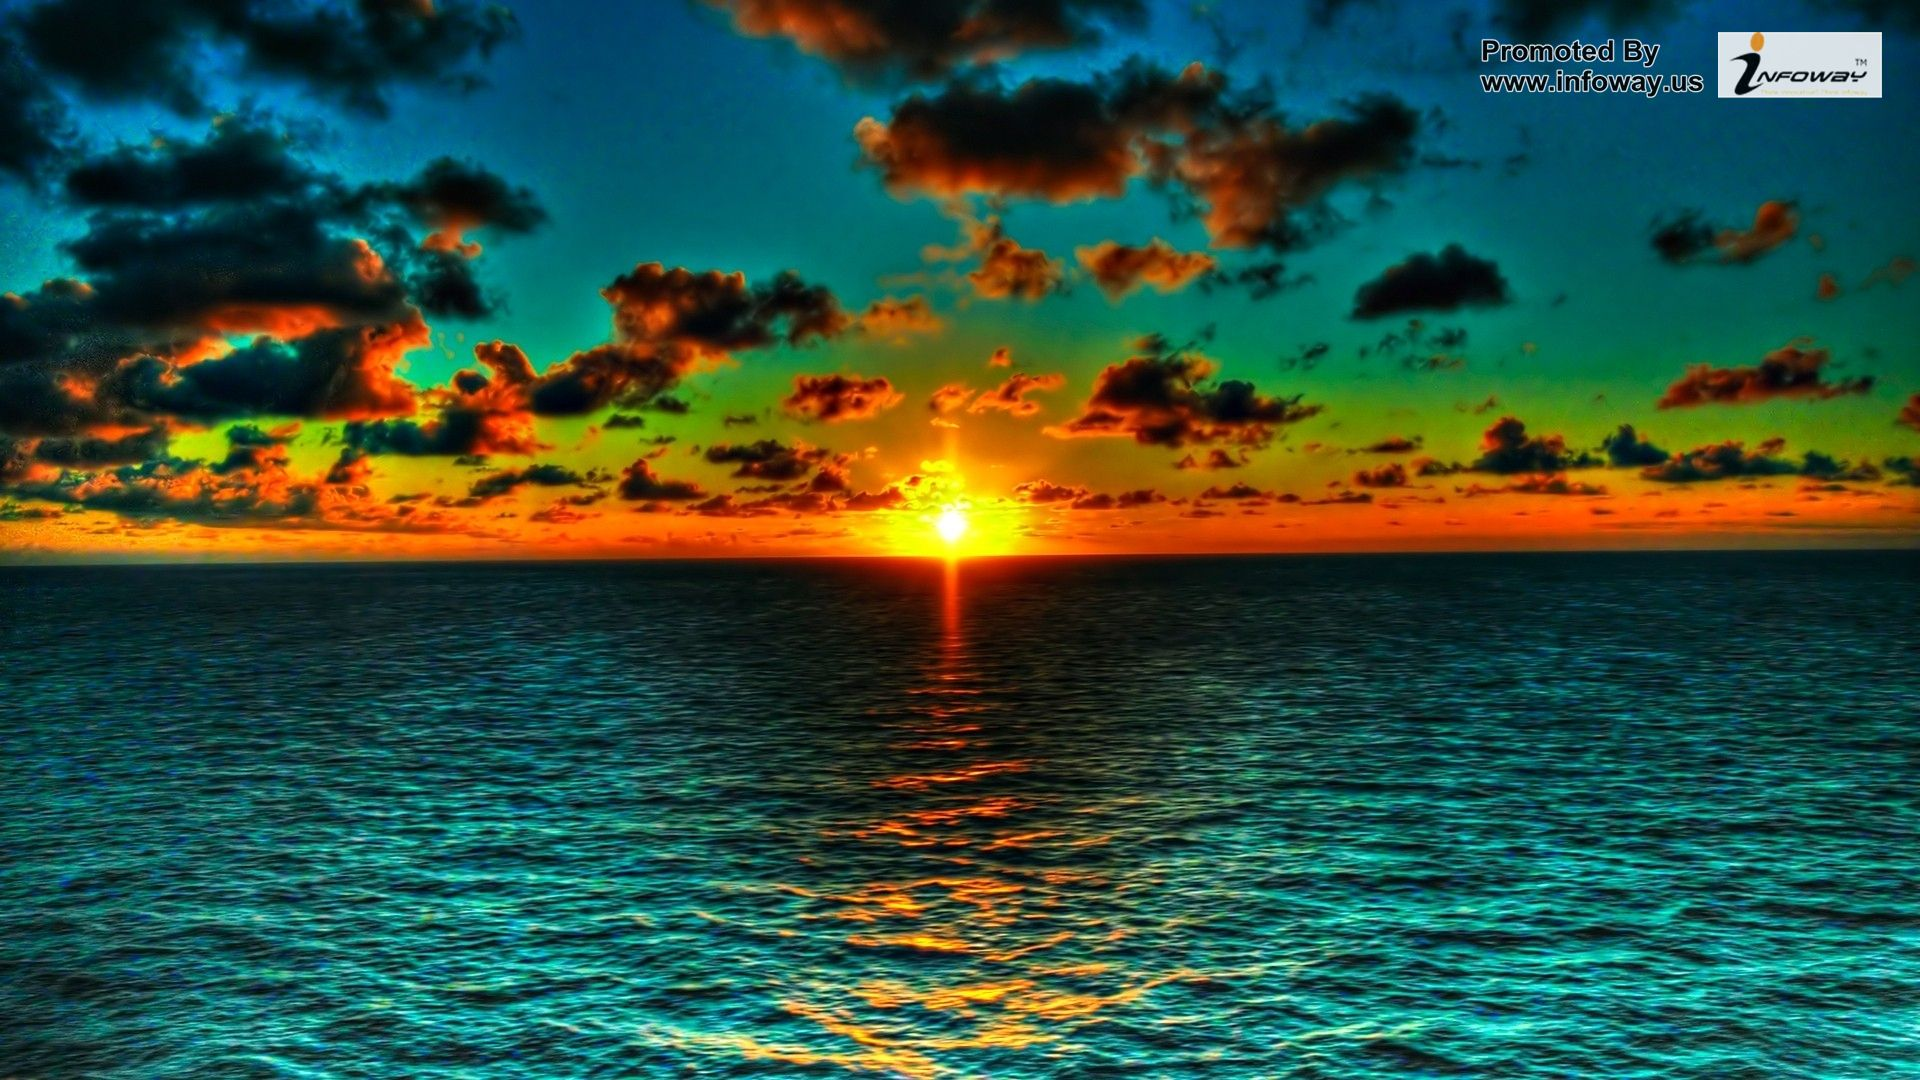 wallpapers orange green ocean sunset 1920x1080 wallpaper jpg 257360 1920x1080